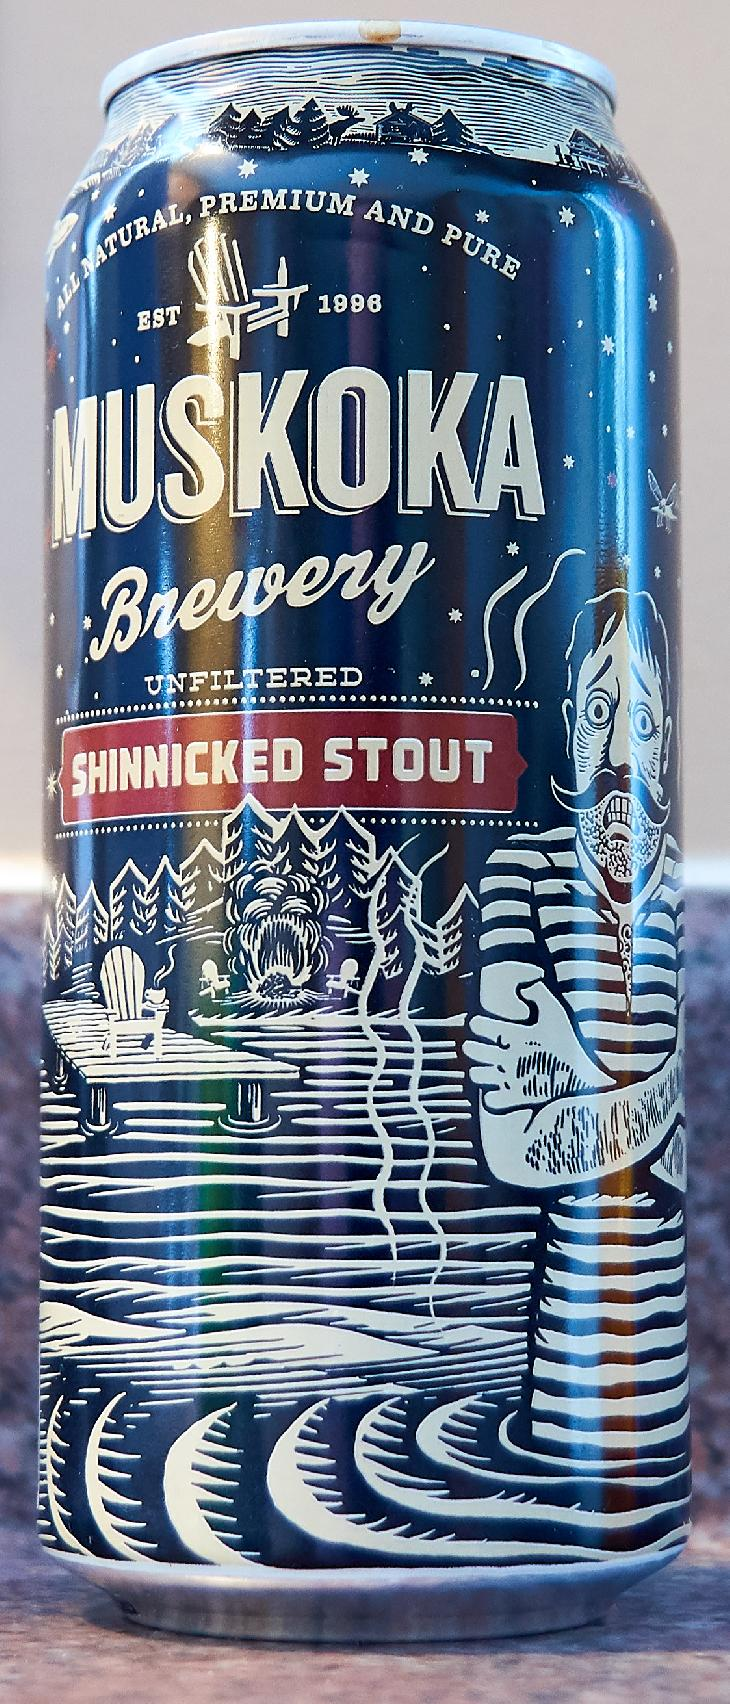 The front view of a Shinnicked Stout beer can.  Brewed by Muskoka Brewery.  Tasting notes are: Velvety smooth with higher carbonation for a lighter mouthfeel. Dark roasted chocolate flavours complement strong coffee notes, present from roasted coffee additions.